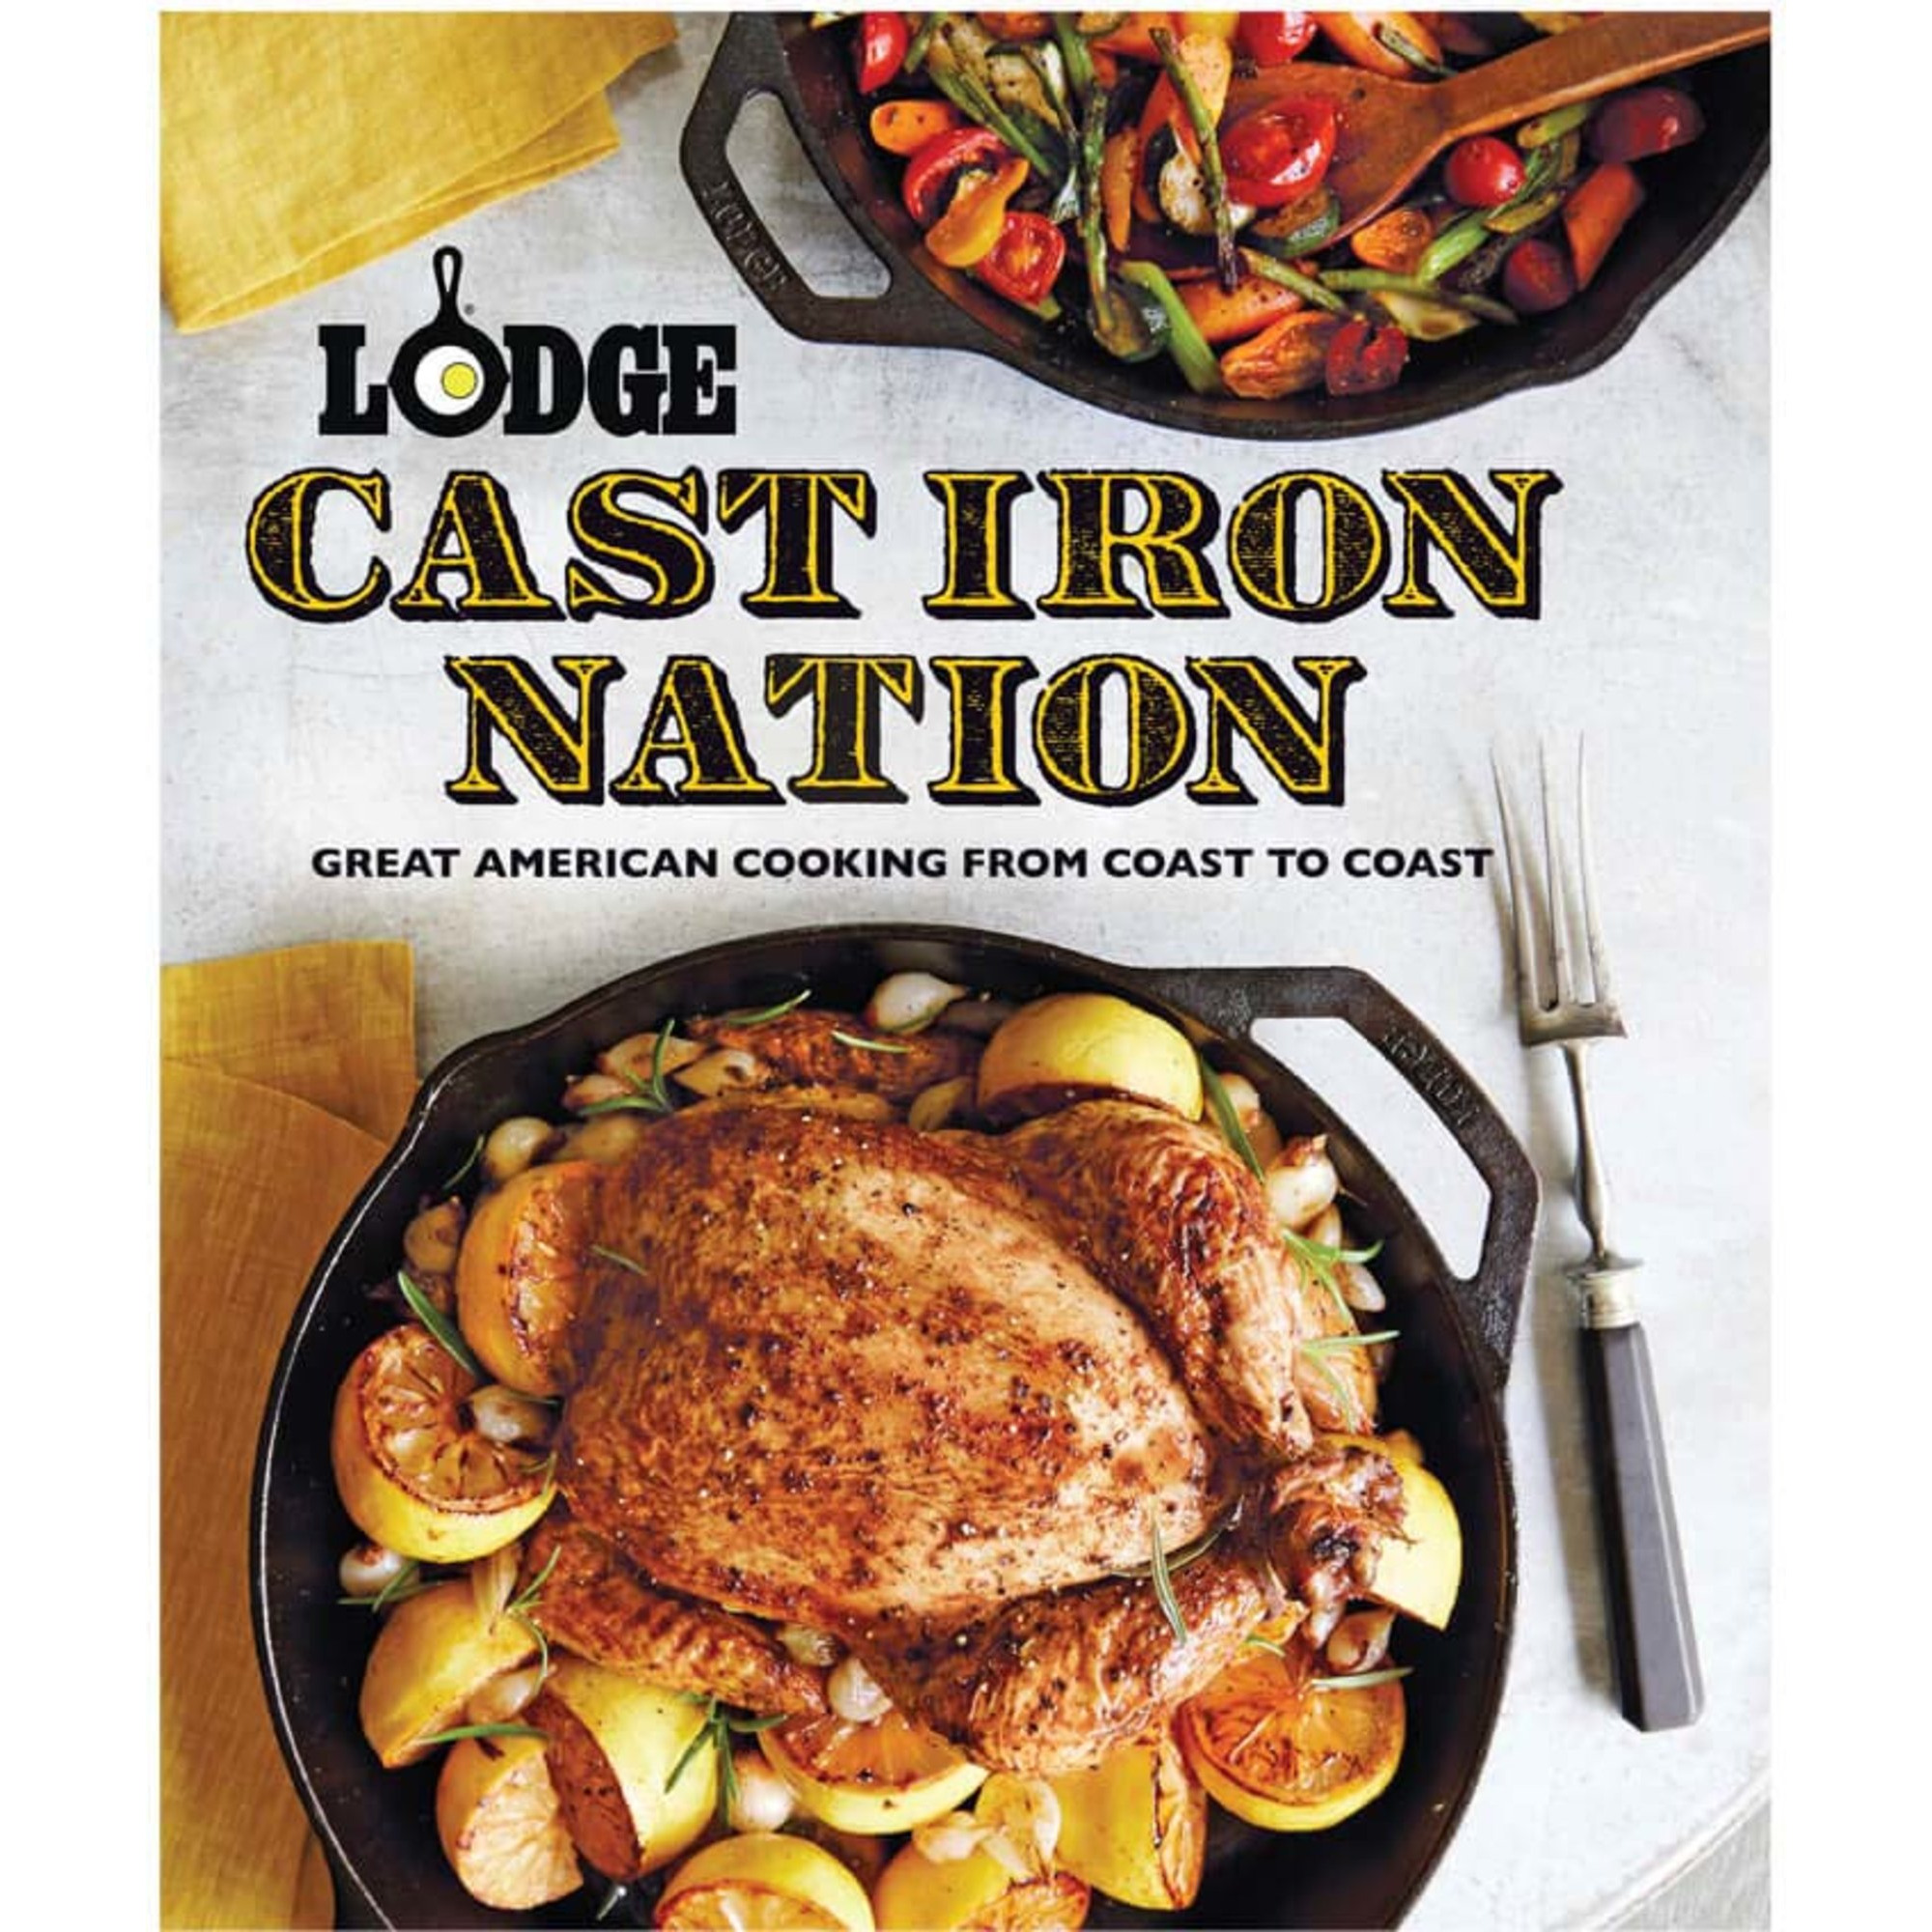 Lodge Kokbok Cast Iron Nation: GreatAmerican Cooking from Coast to Coast